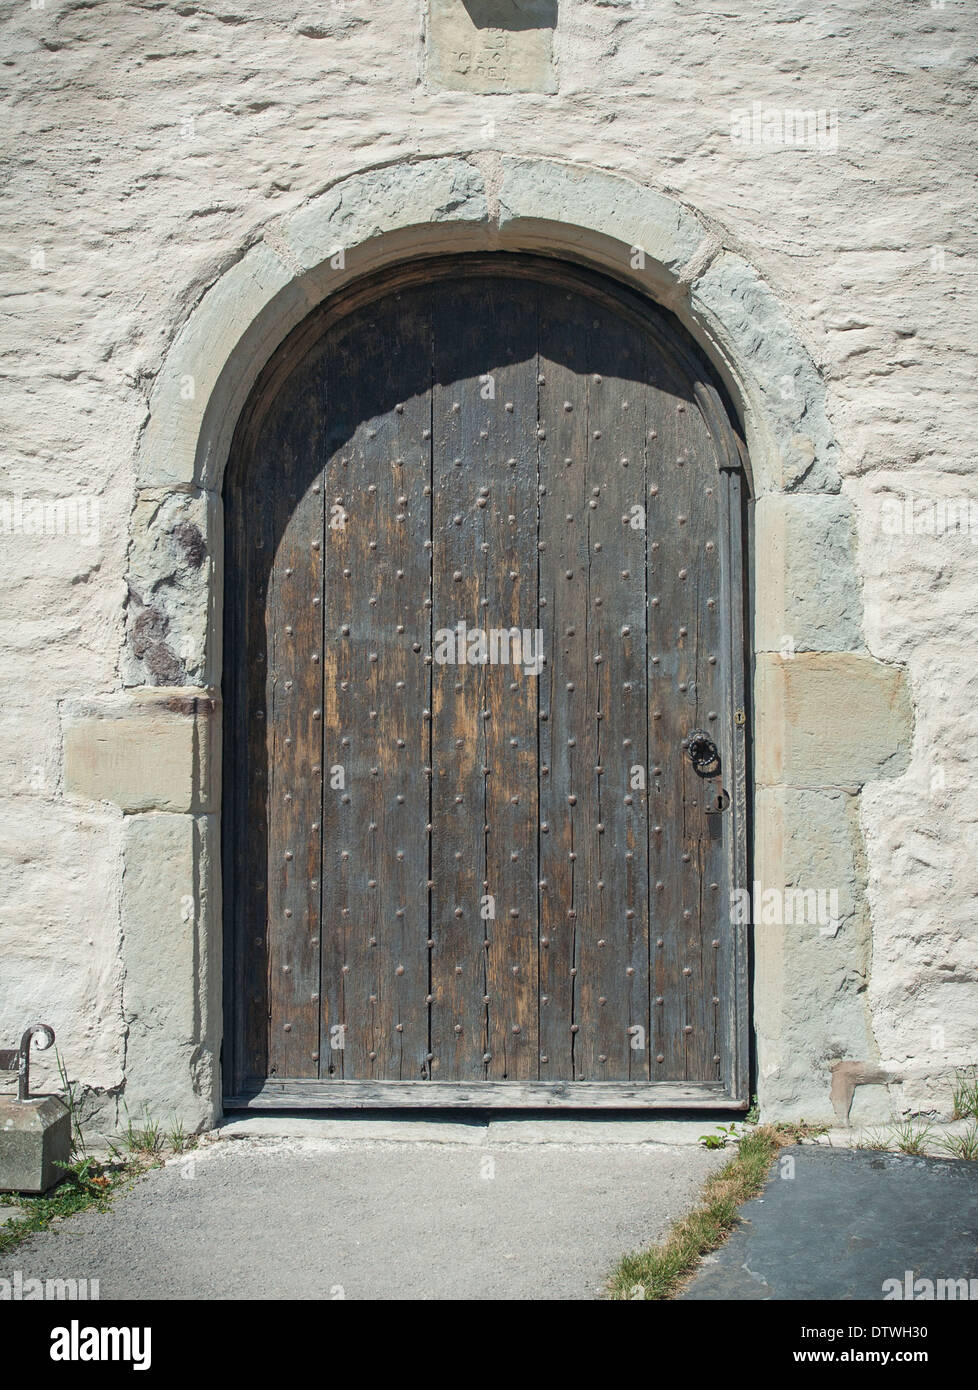 Entrance door of St Marcella's Church set in the Vale of Clwyd, North Wales, less than one mile from the town of Denbigh. - Stock Image